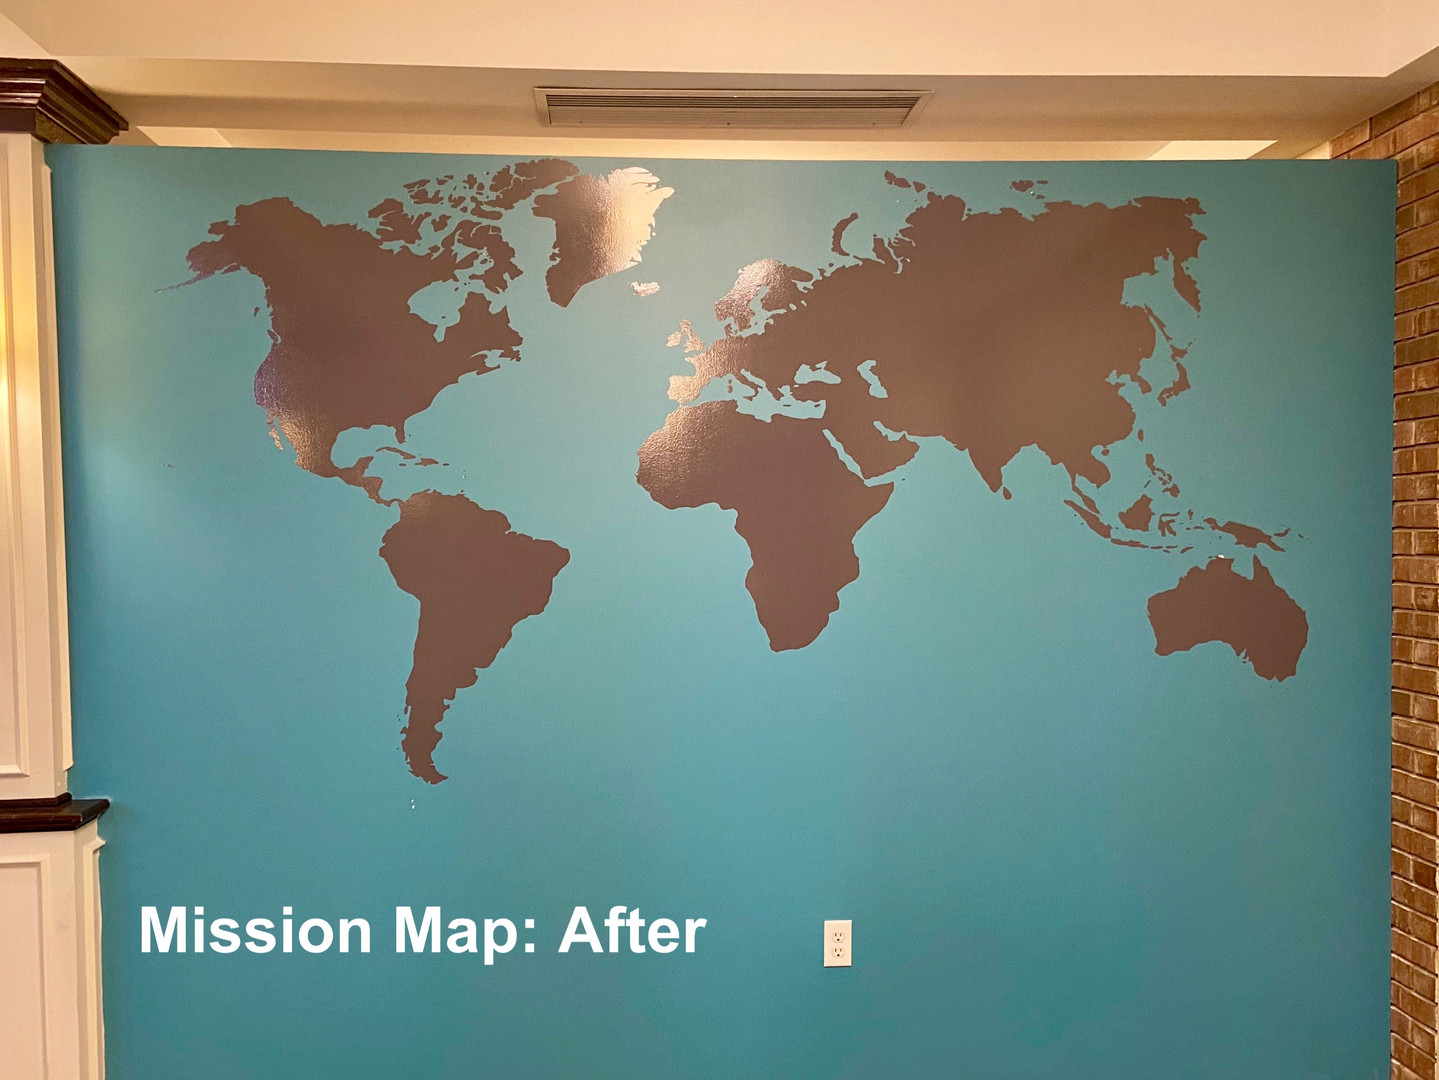 Mission Map: After